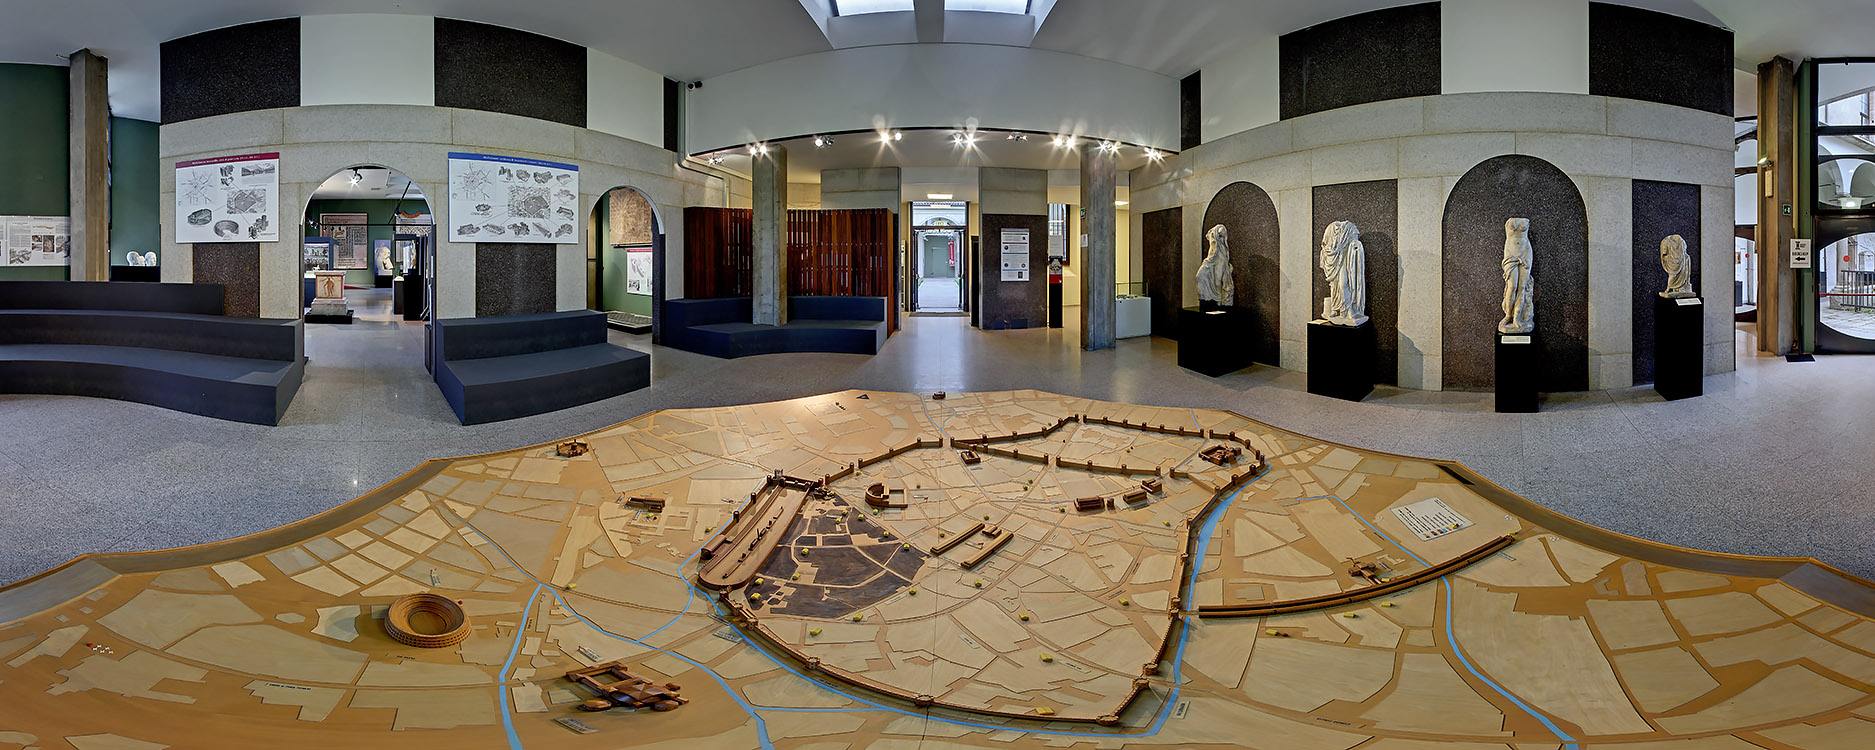 The Museum entrance with a scale model of the Roman Milan